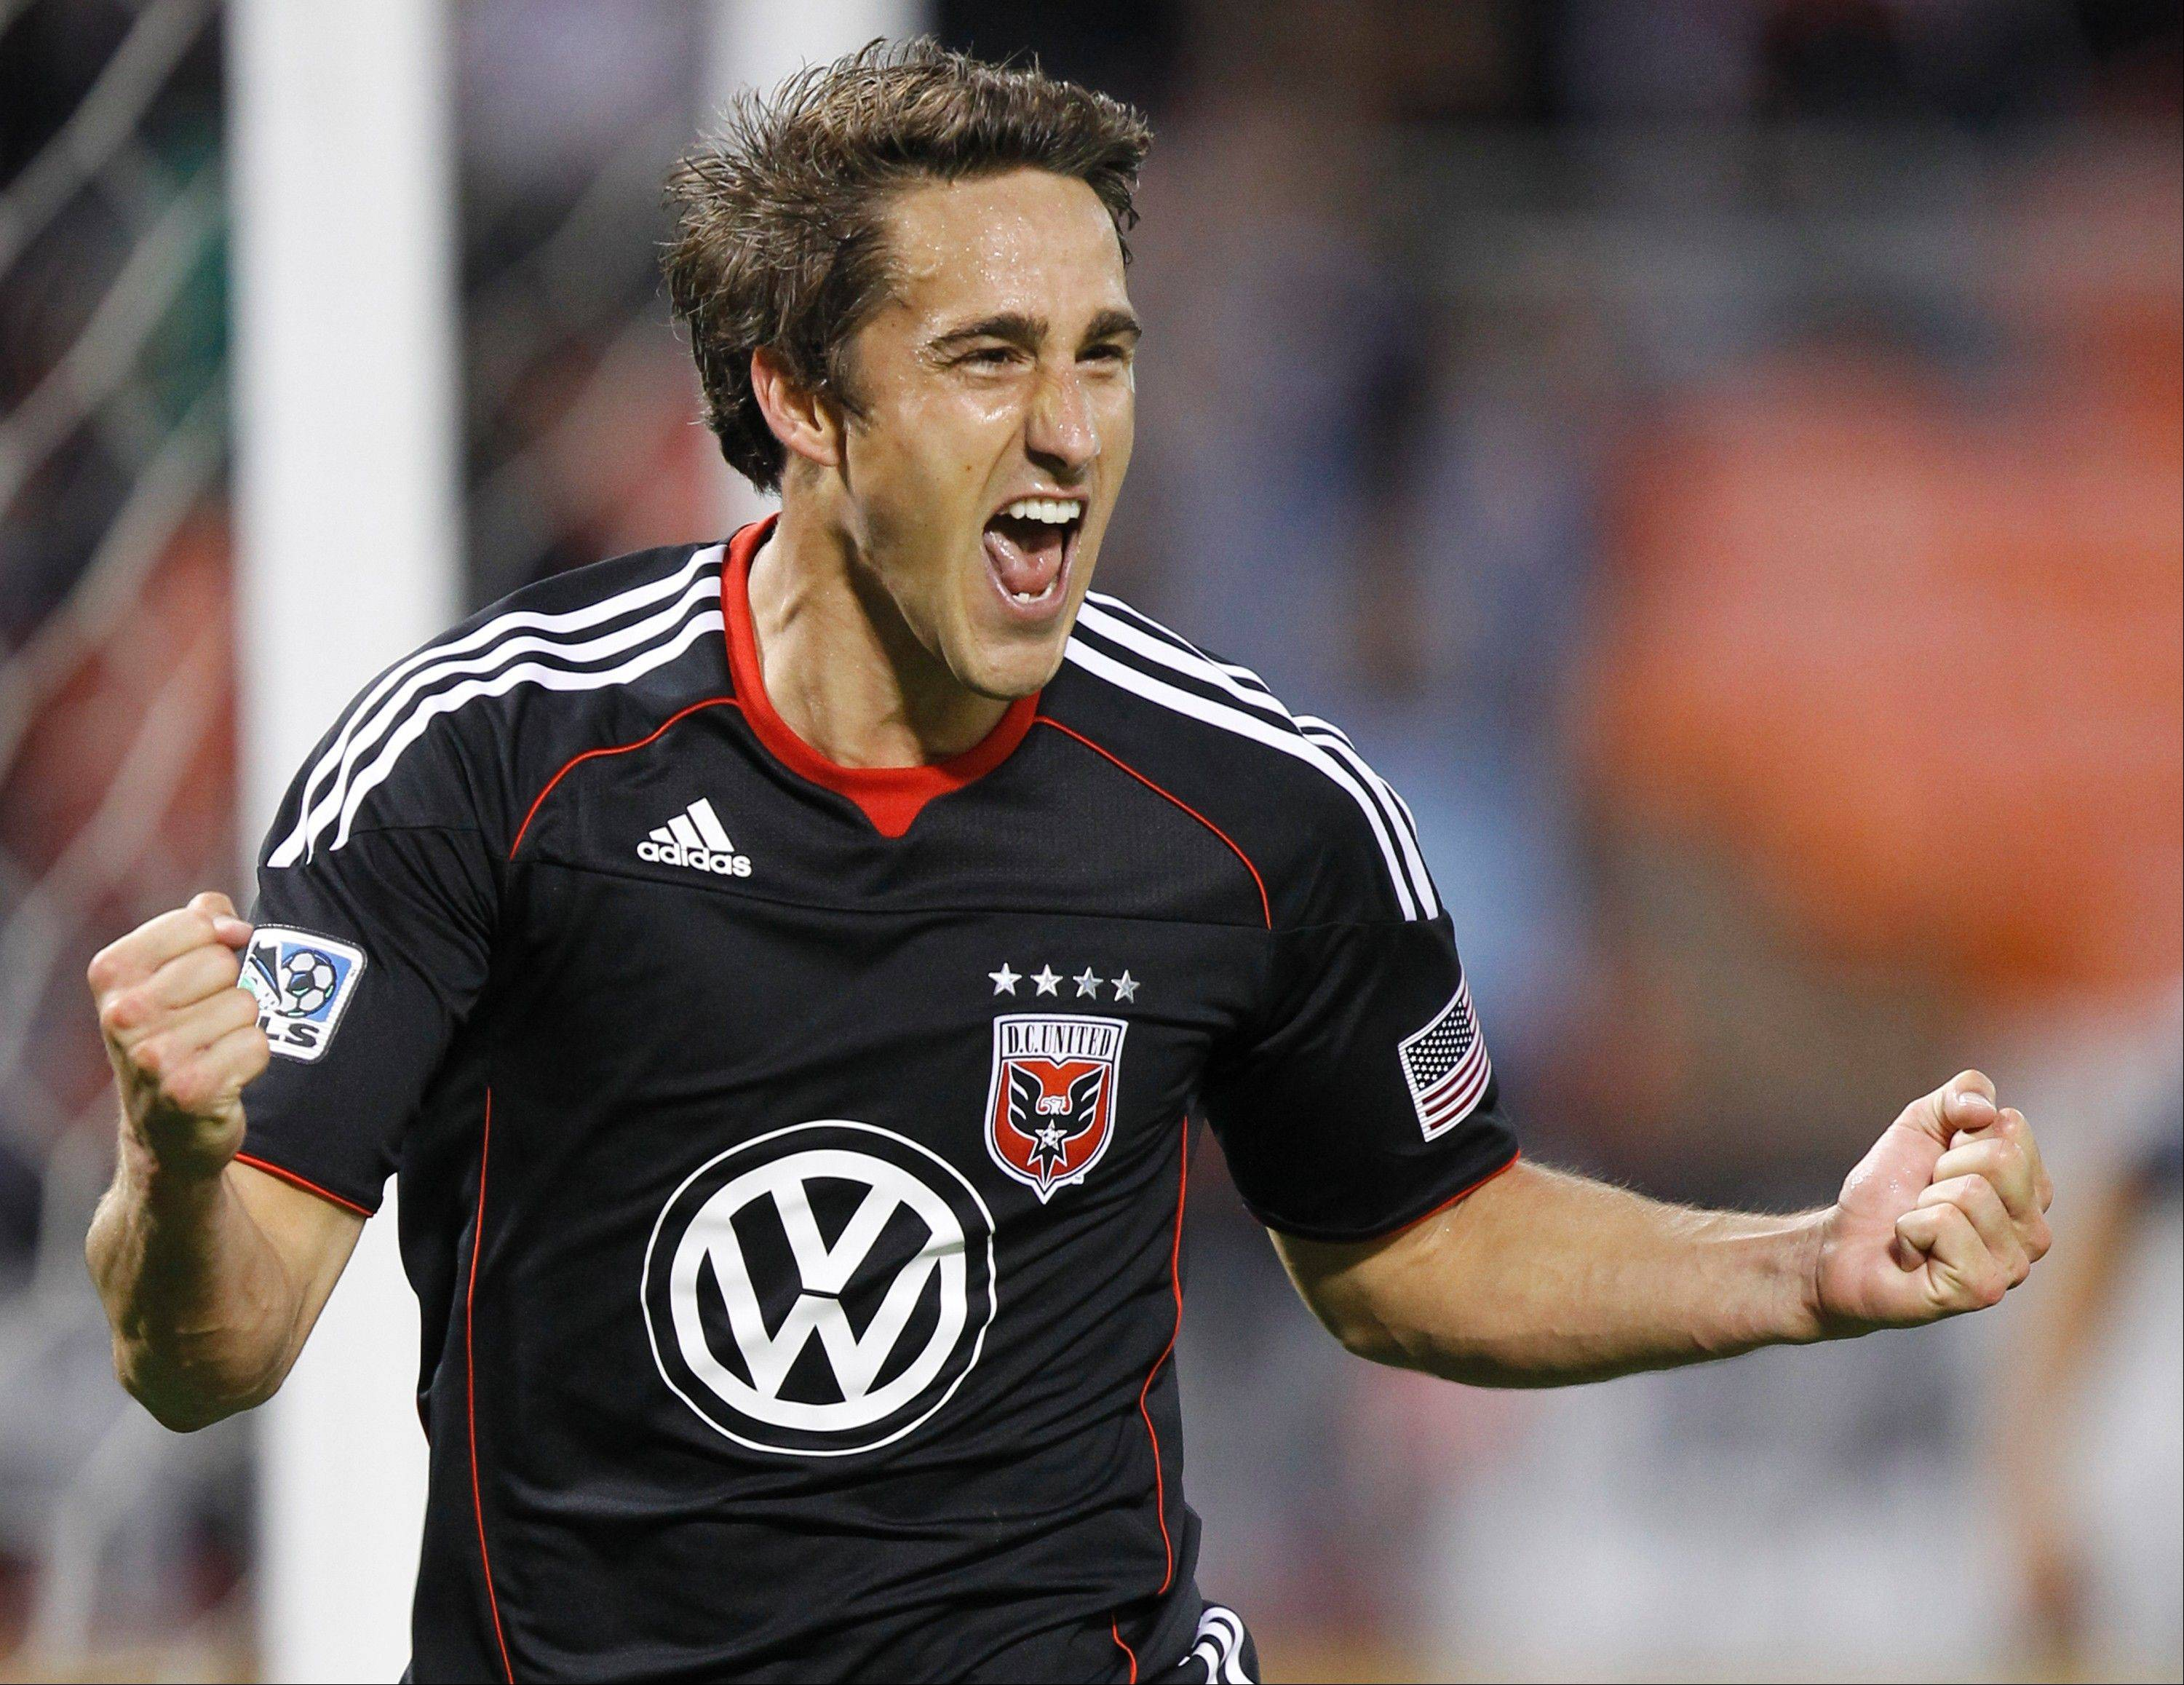 DC United's Josh Wolff has retired as a player after 15 seasons in the MLS. The former Fire star ranked 14th in career scoring. He joins the DC United coaching staff as a fulltime assistant.